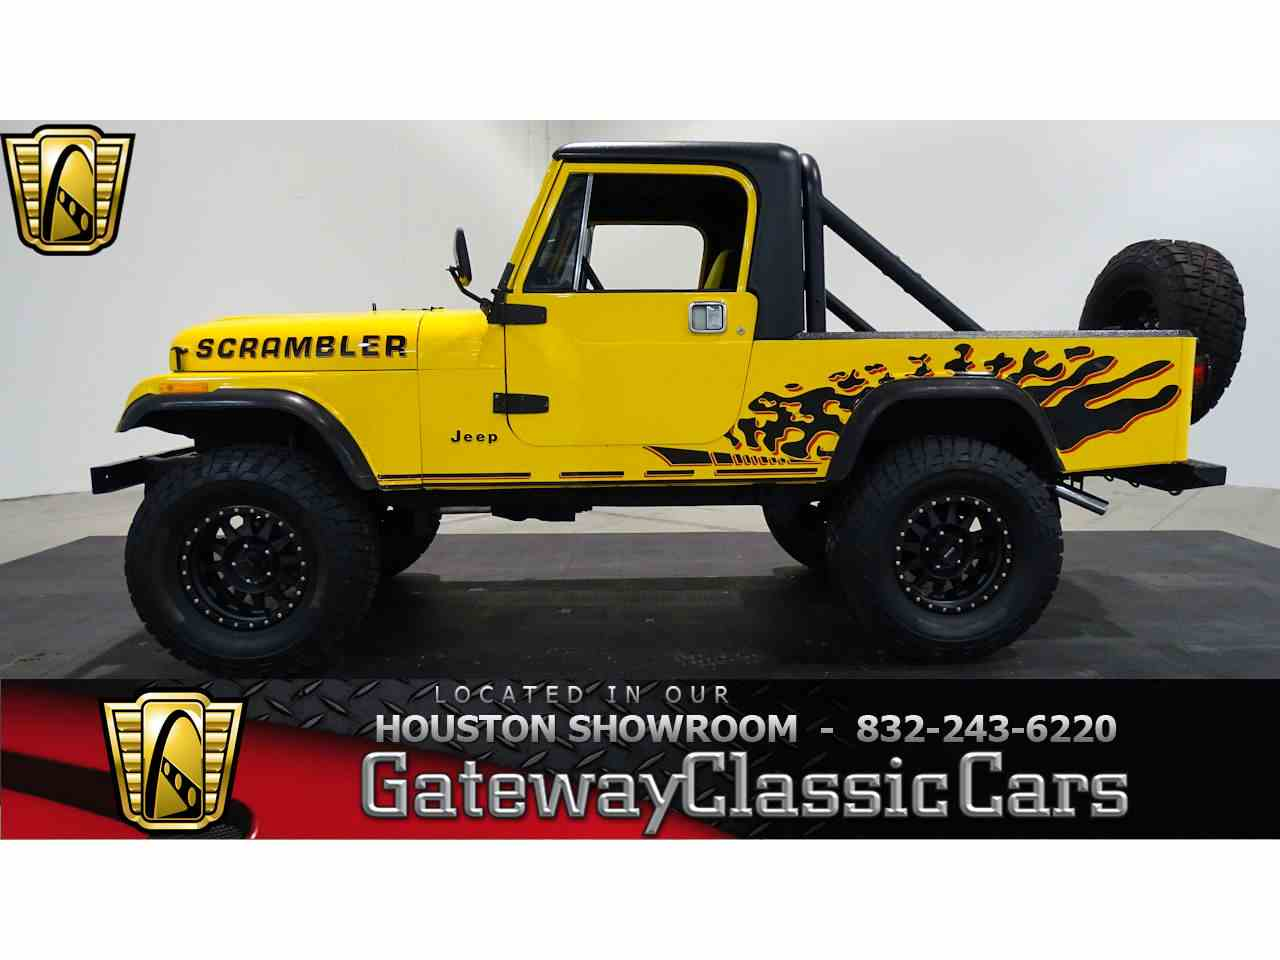 Large Picture of 1985 CJ8 Scrambler located in Houston Texas - KEST